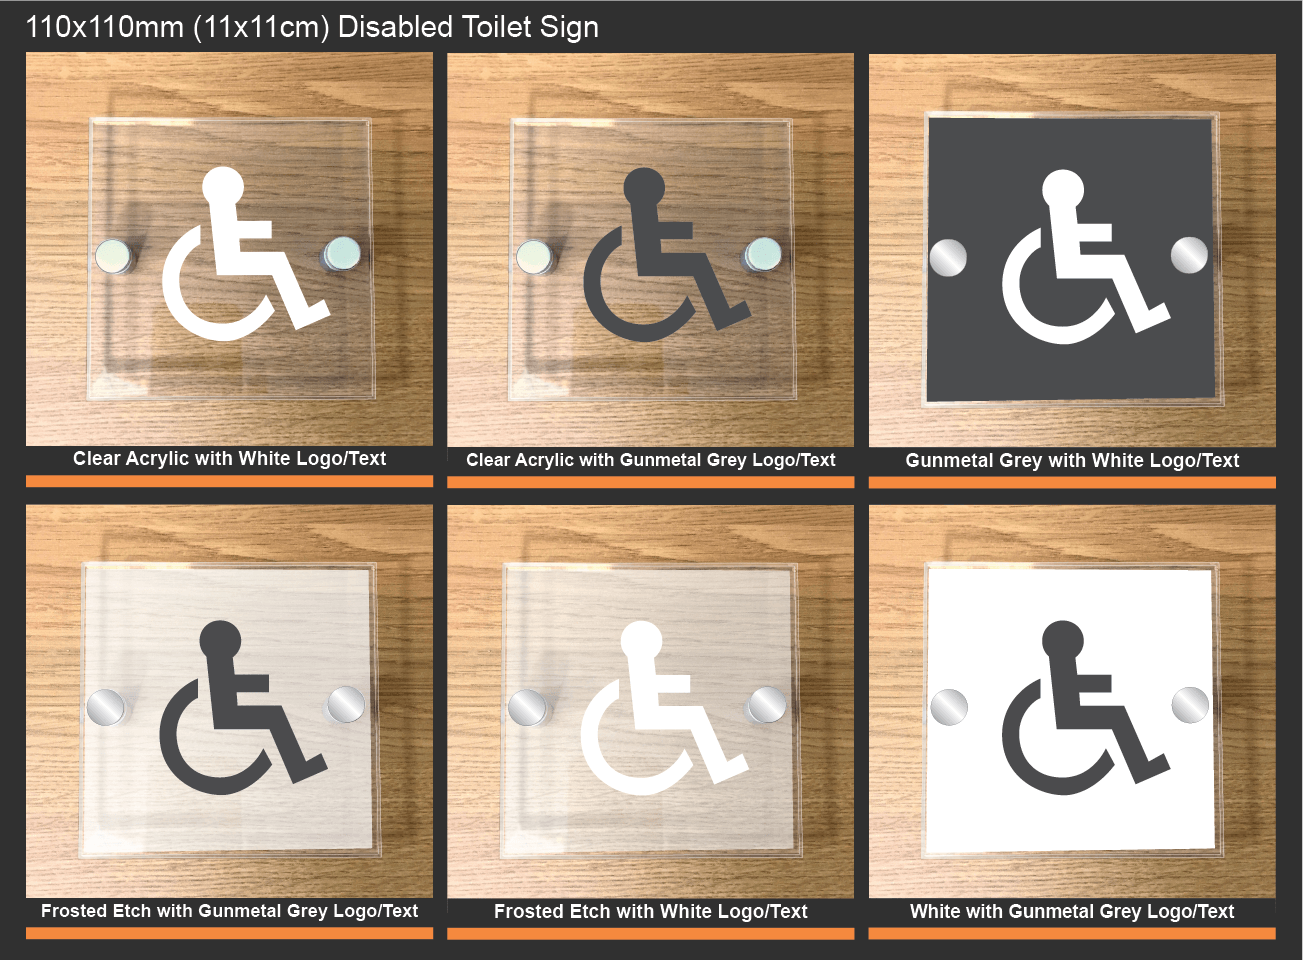 Disabled Toilet Signs - Customised Acrylic Disabled Toilet Signs